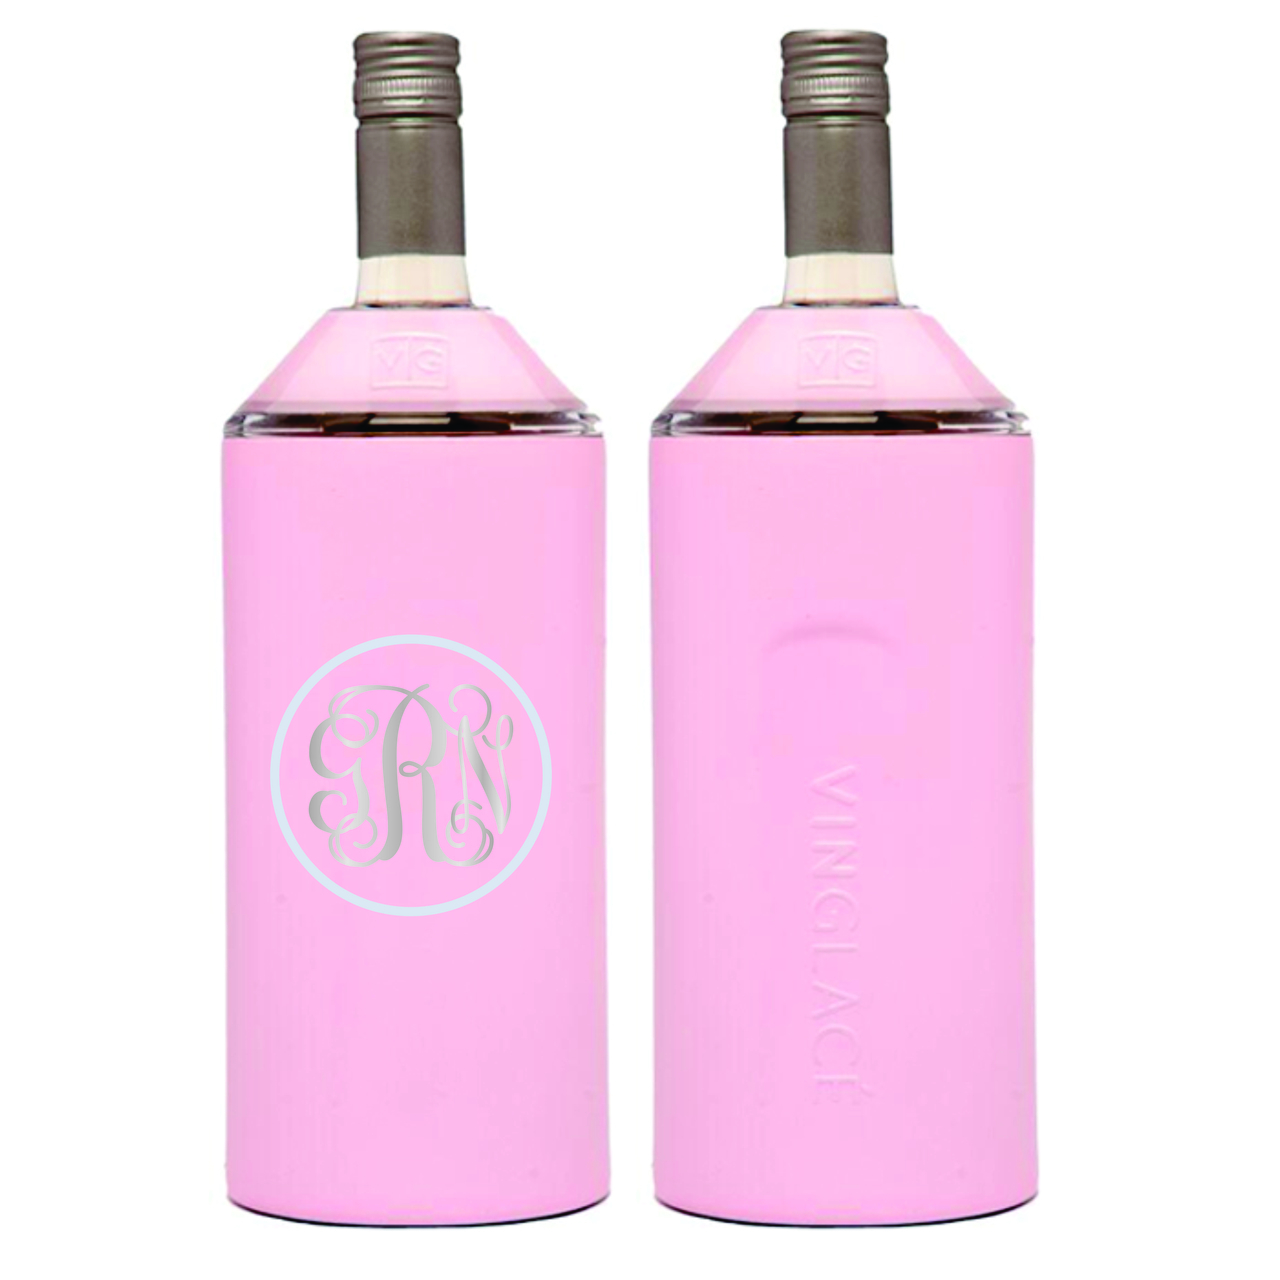 Engraved Vinglacé Wine Chillers - AS SEEN ON KATHIE LEE AND HODAThese double insulated, stainless steel wine insulators will keep your bottle at the perfect temperature all day long. Select your favorite color and you'll be able to personalize it with a custom engraved design.